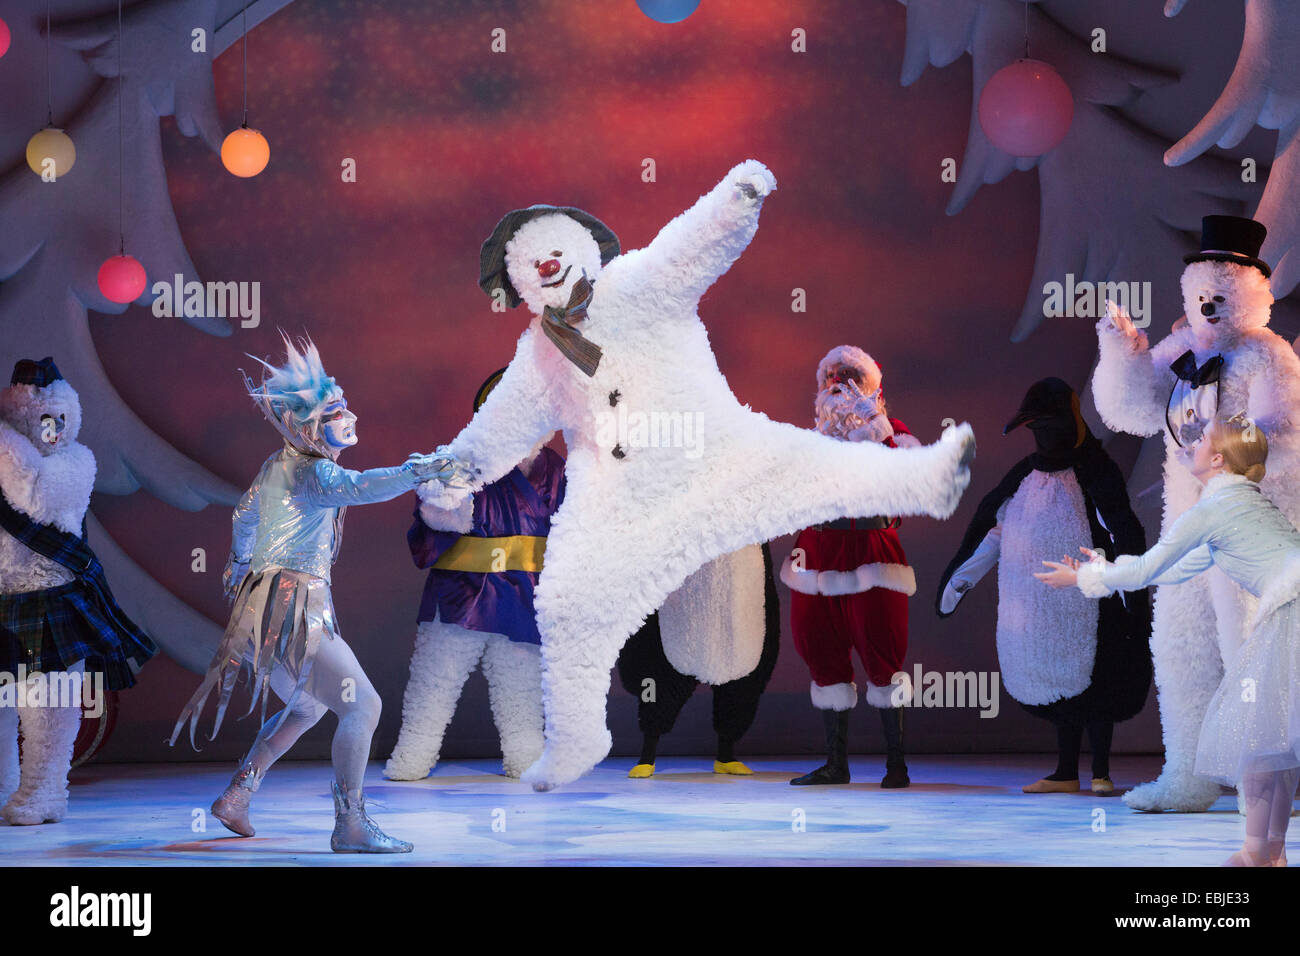 Children's Christmas and winter show The Snowman performed at the Peacock Theatre, London Stock Photo